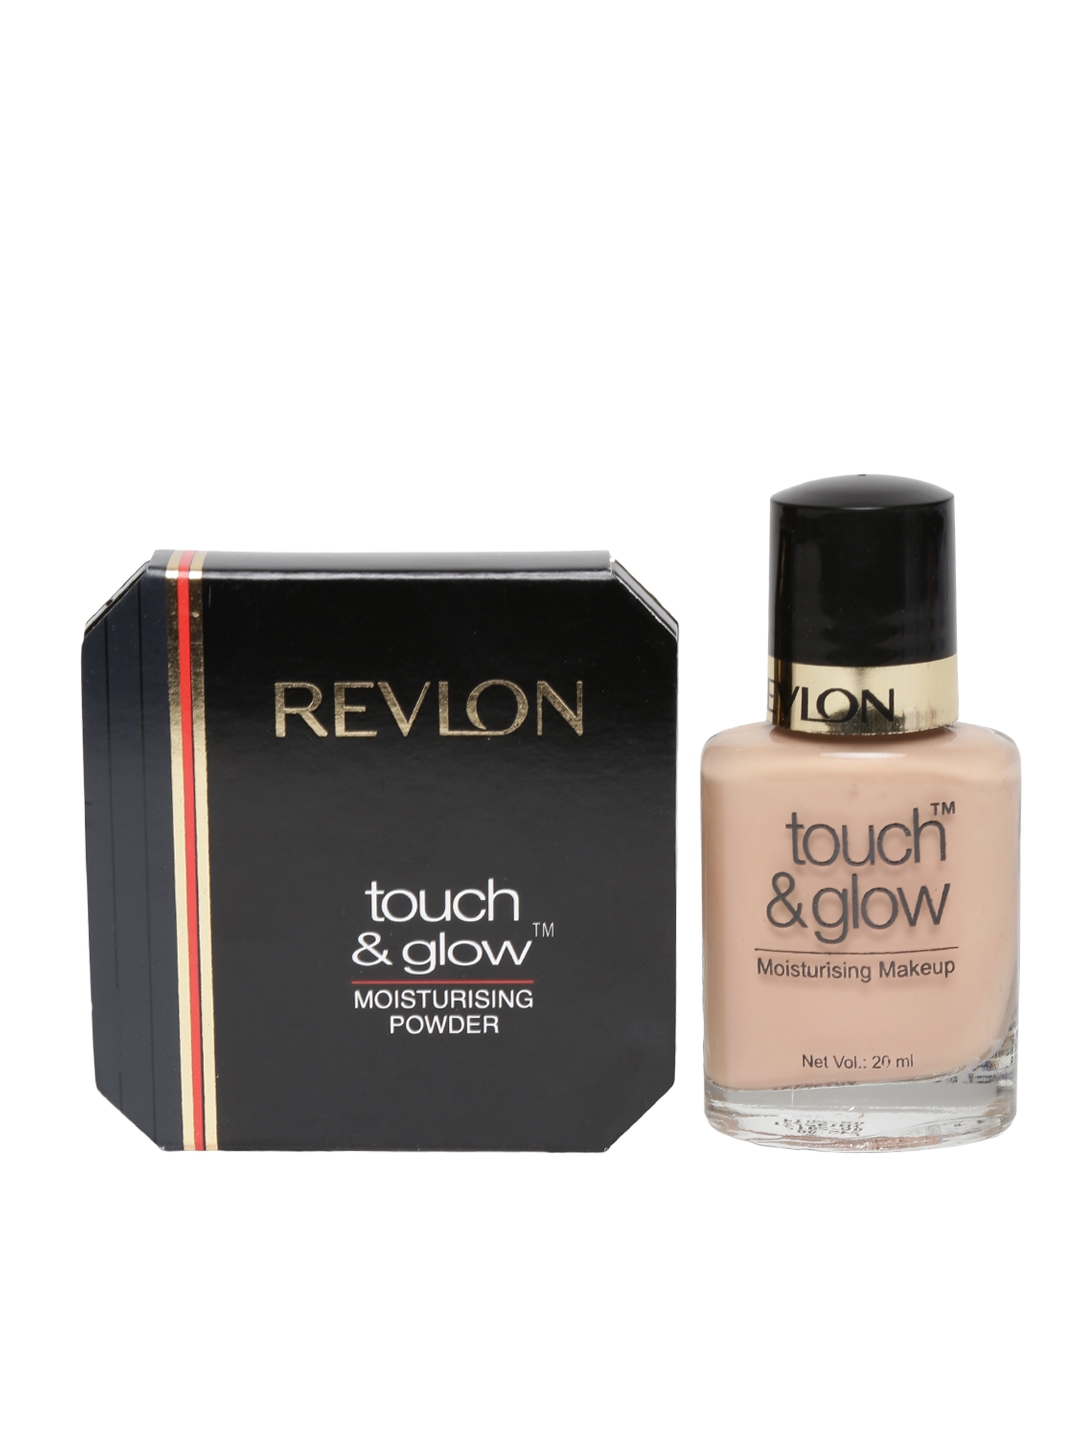 Myntra Revlon Beauty Gift Set 528316 | Buy Myntra Revlon ...